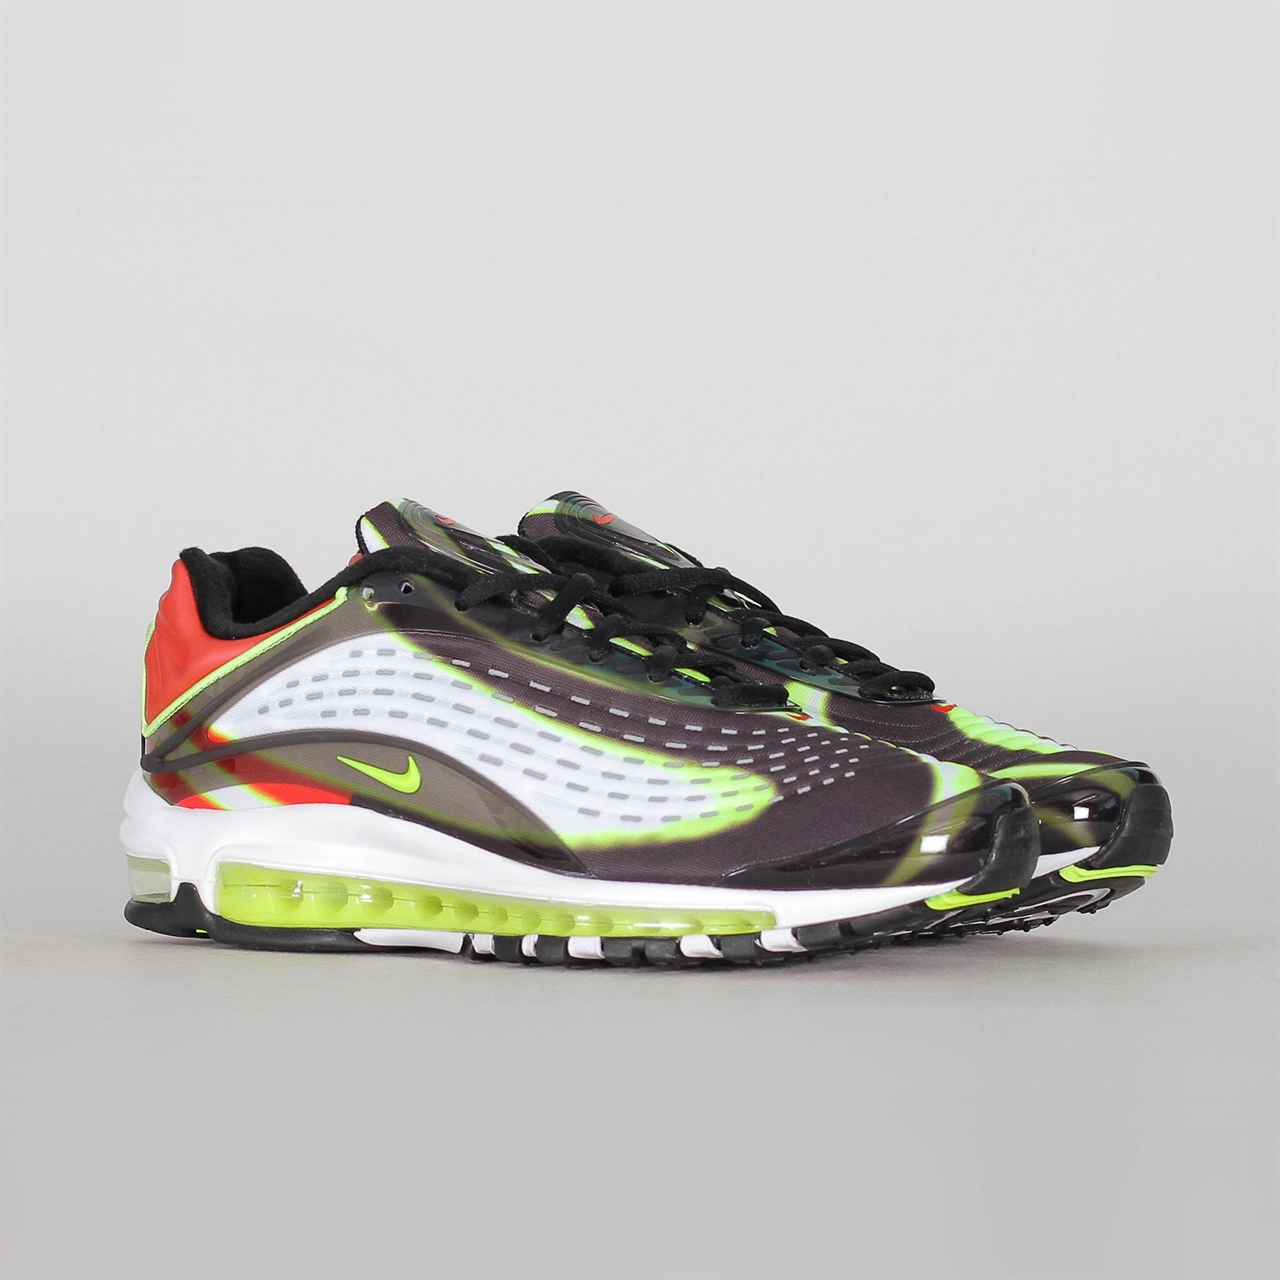 ce28f6655a Nike Air Max Deluxe (AJ7831-003) - Shelta